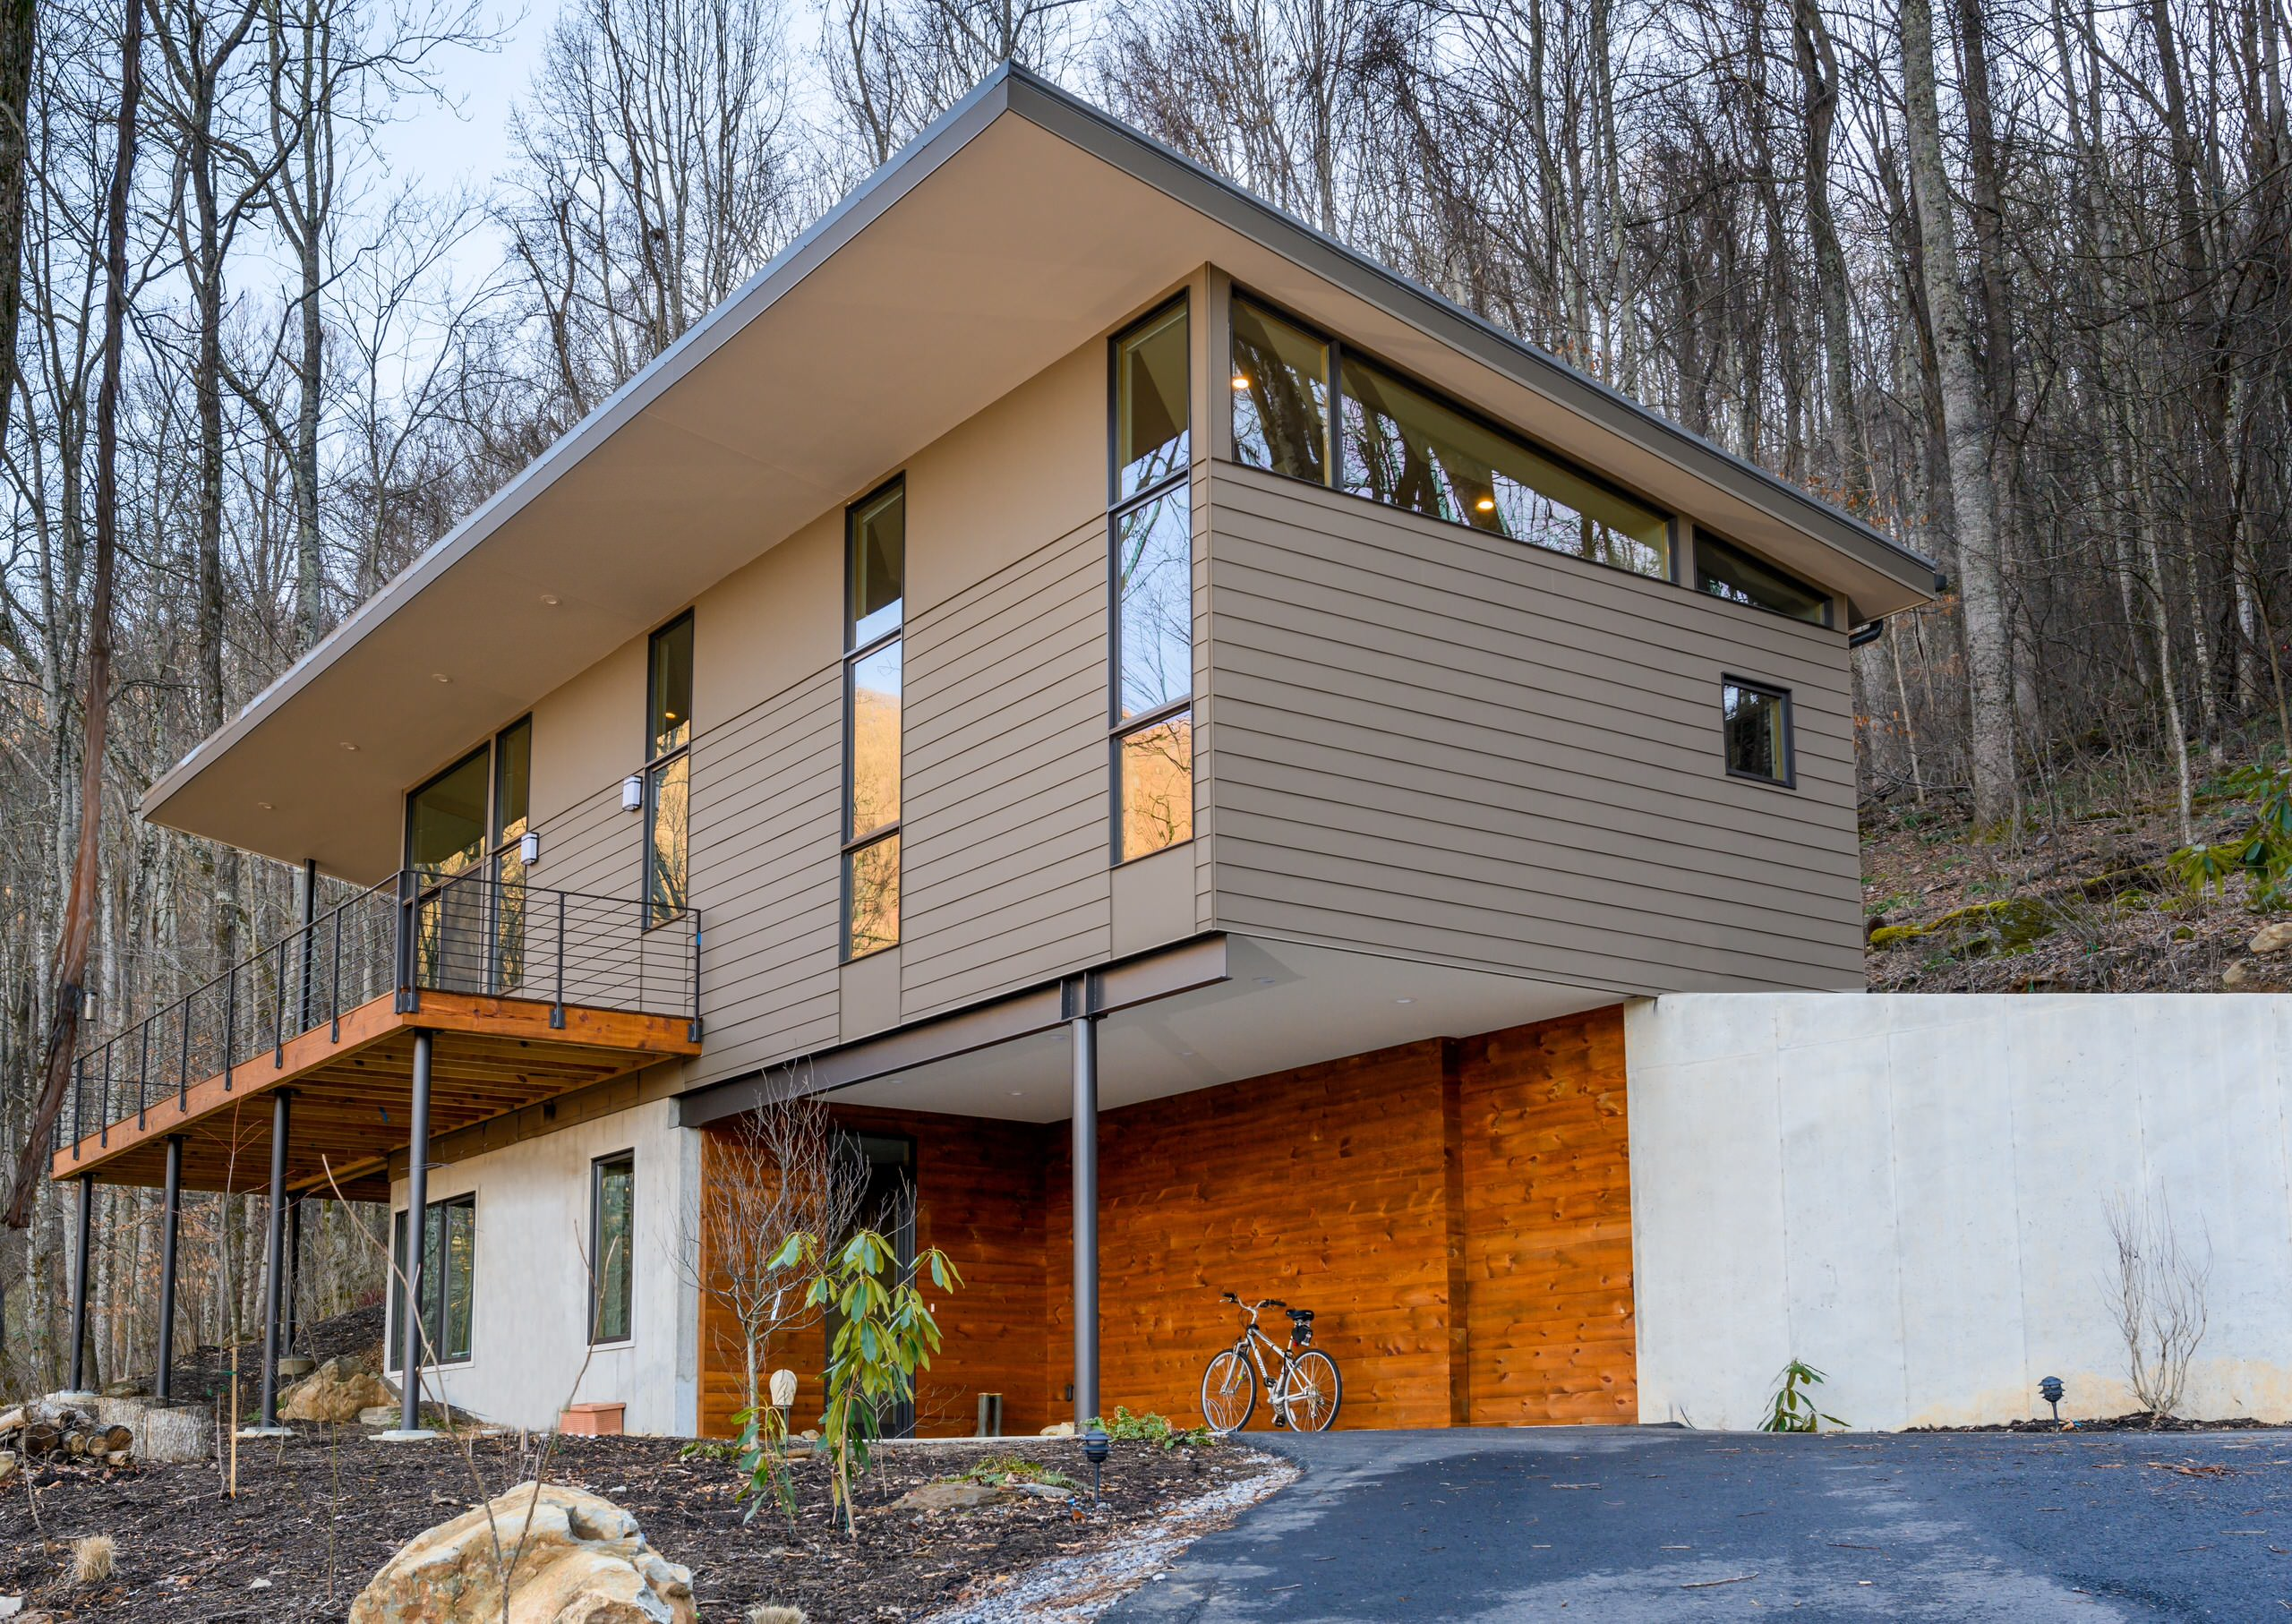 75 Beautiful Mixed Siding Exterior Home Pictures Ideas January 2021 Houzz